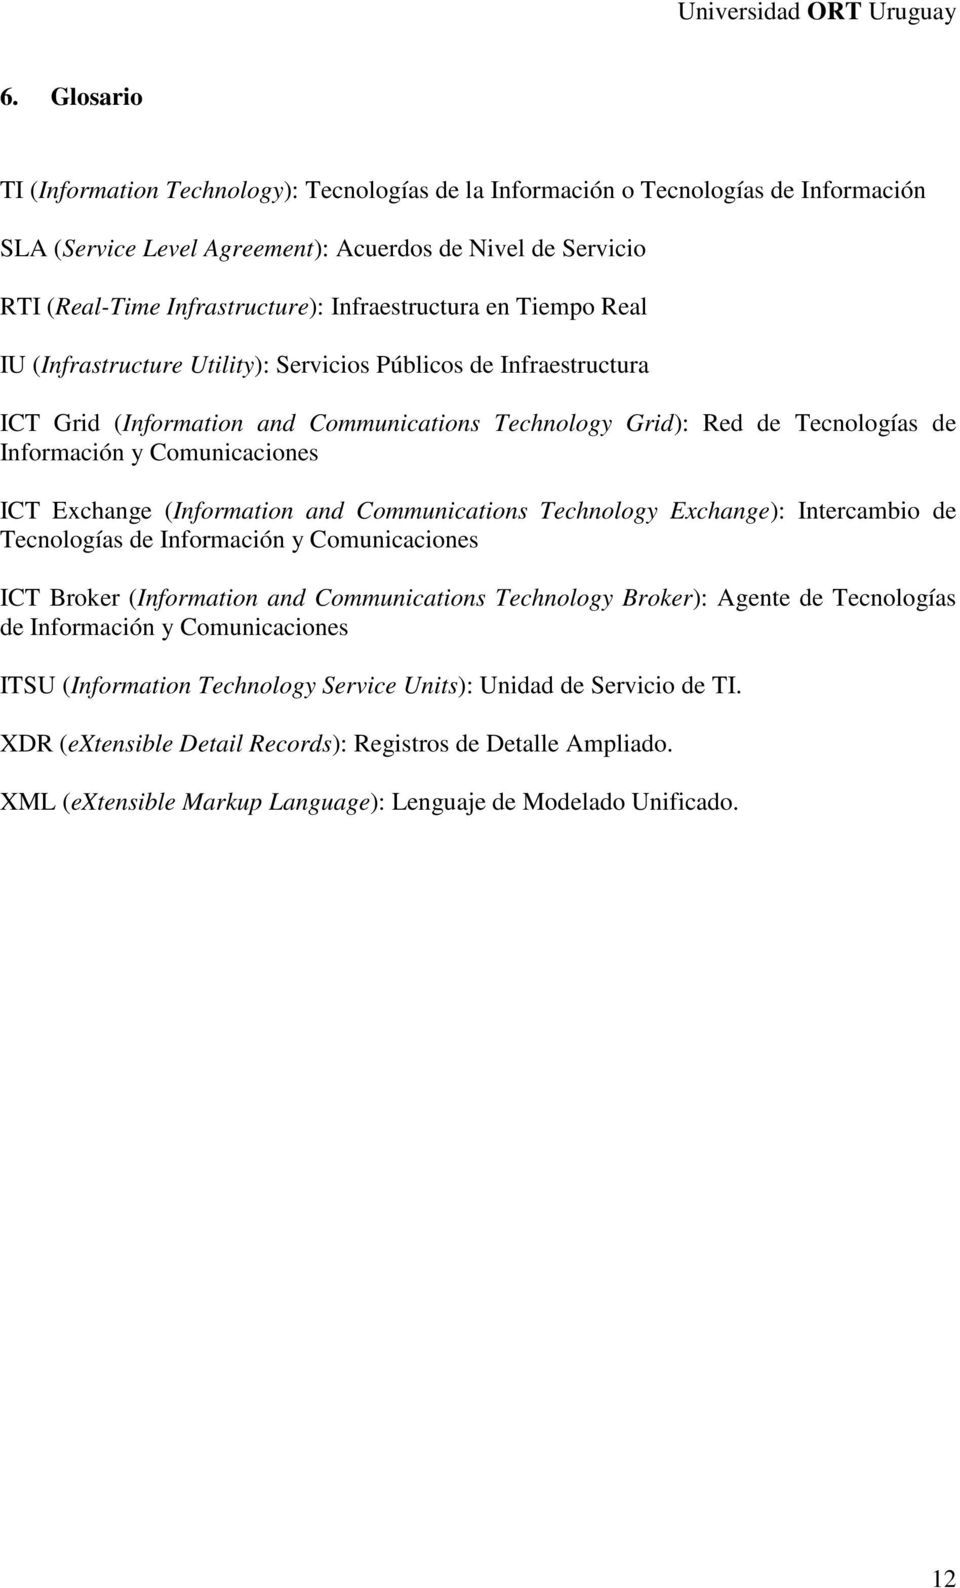 Comunicaciones ICT Exchange (Information and Communications Technology Exchange): Intercambio de Tecnologías de Información y Comunicaciones ICT Broker (Information and Communications Technology